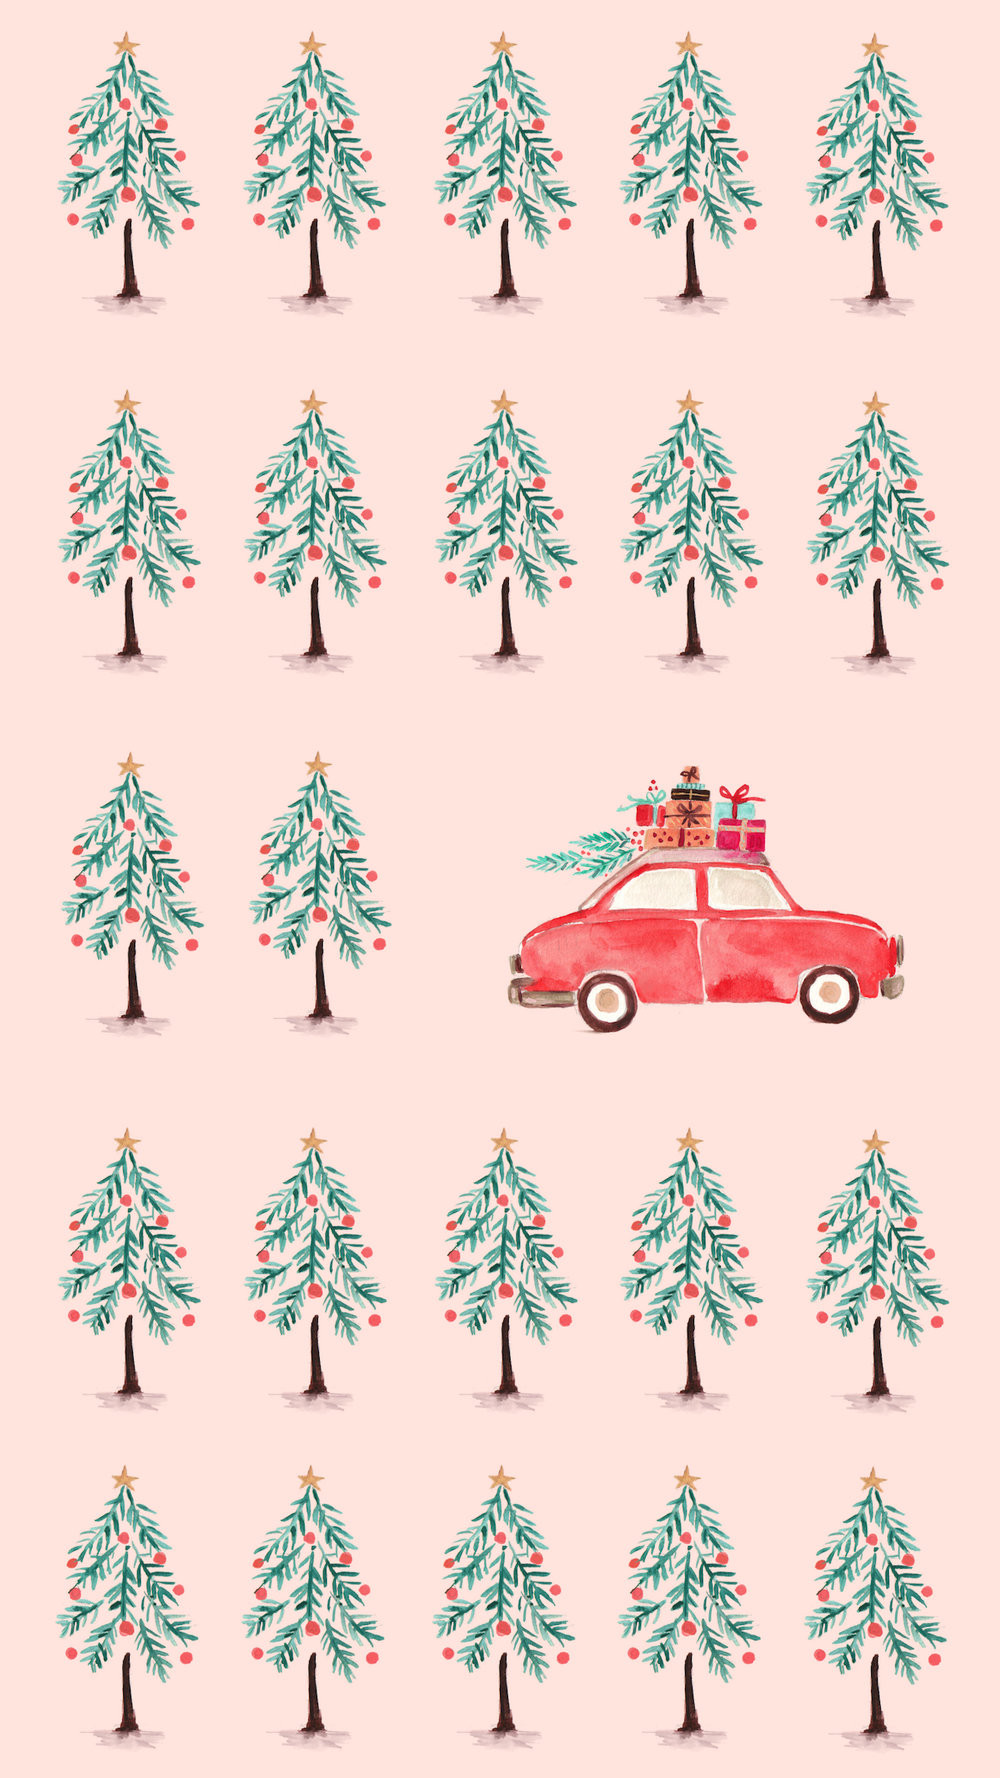 Holiday Christmas Winter Phone Wallpaper Background Christmas Trees